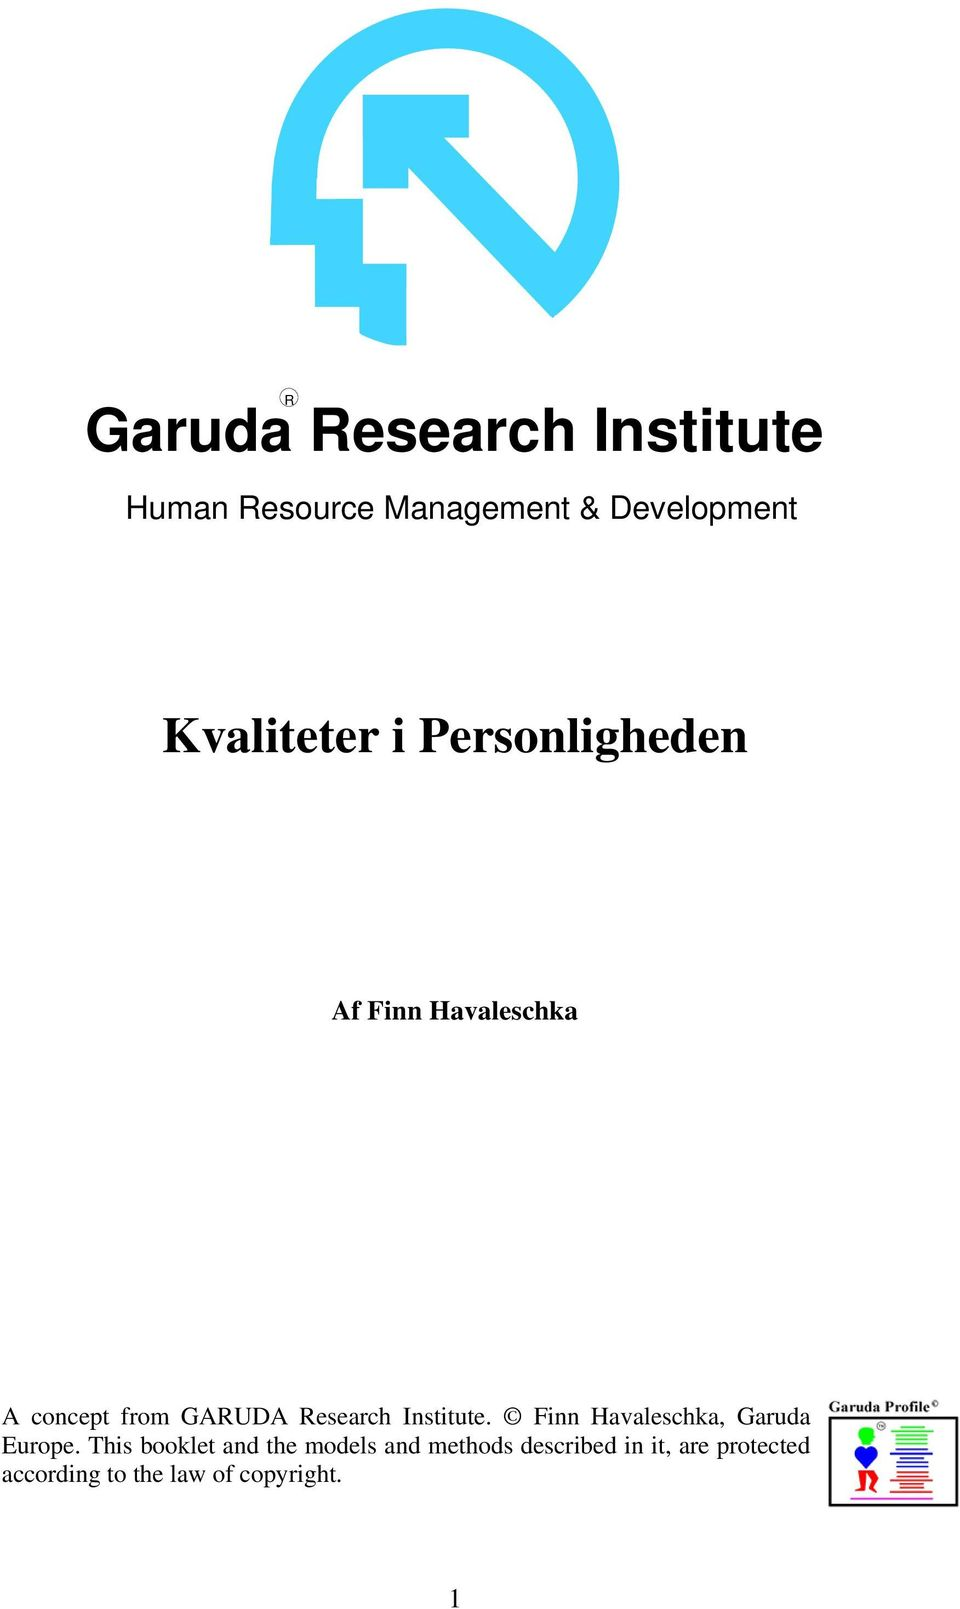 Research Institute. Finn Havaleschka, Garuda Europe.